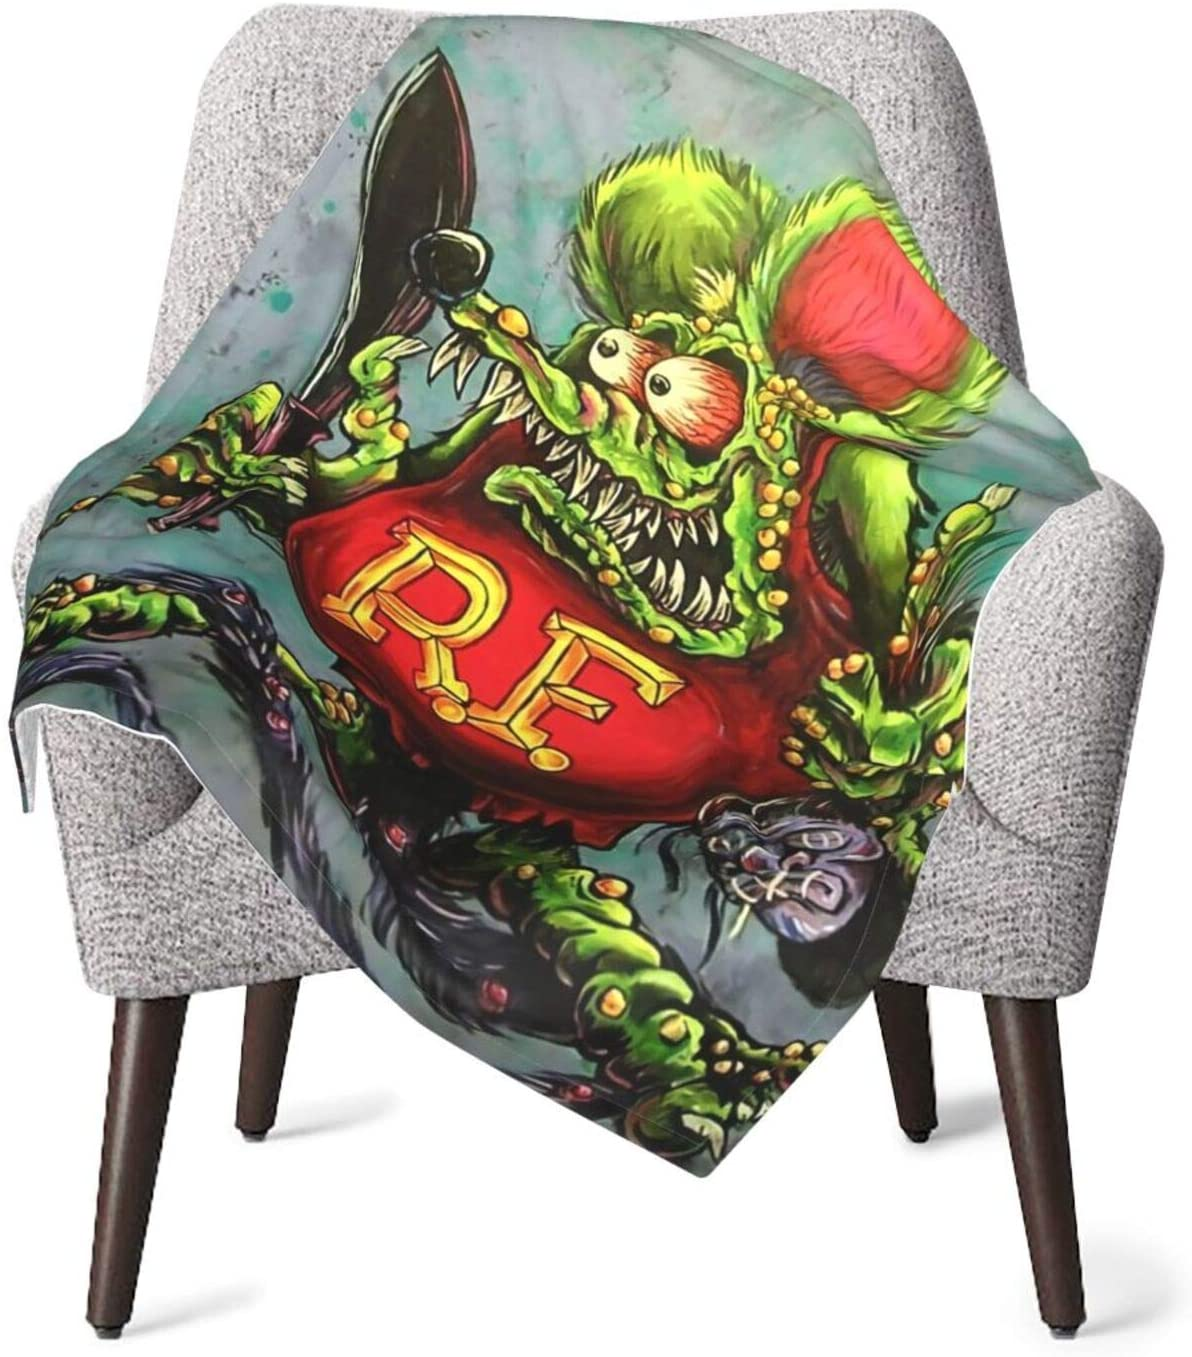 JimmyMilly Rat Fink Stylish Soft Warm Cozy Blanket Toddler Baby Comfort Blanket Lightweight Blanket Fluffy Blanket for Travel 30x40in